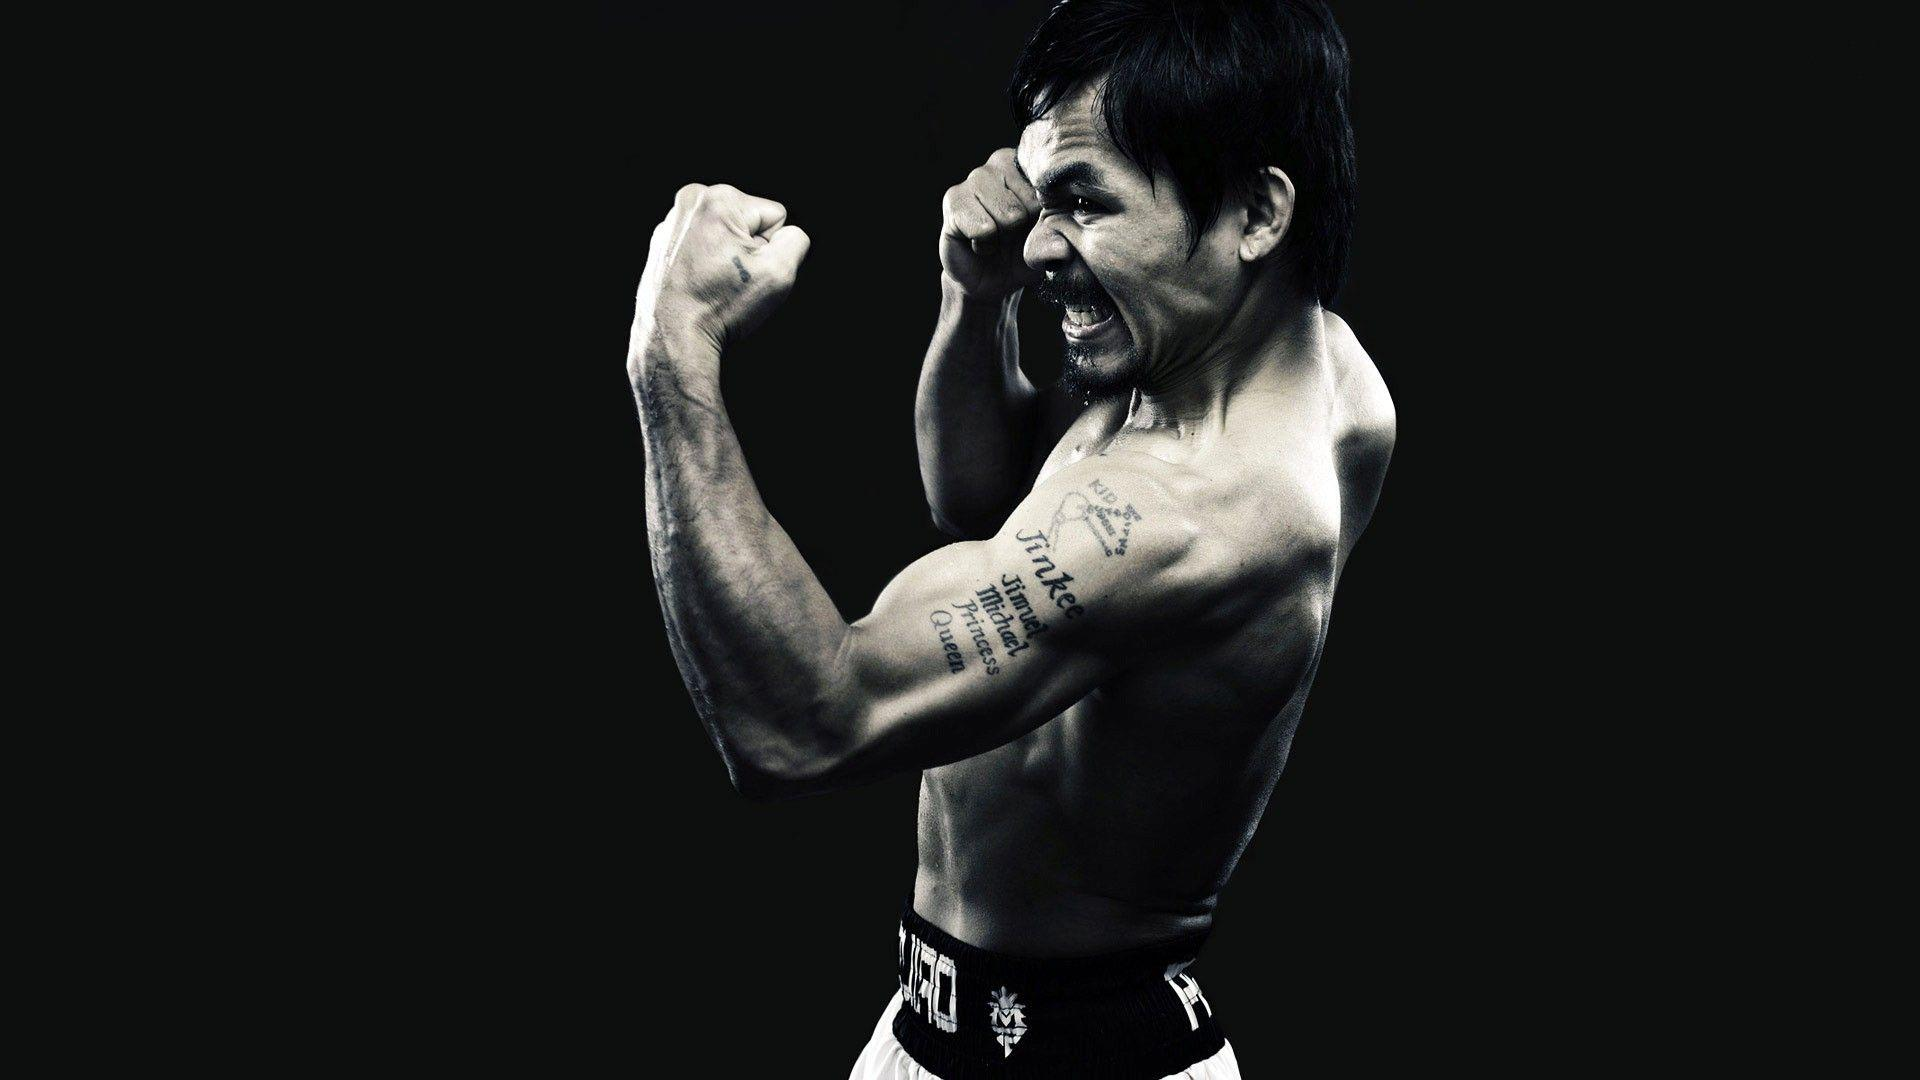 Manny Pacquiao 2015 Boxing Wallpapers free desktop backgrounds and